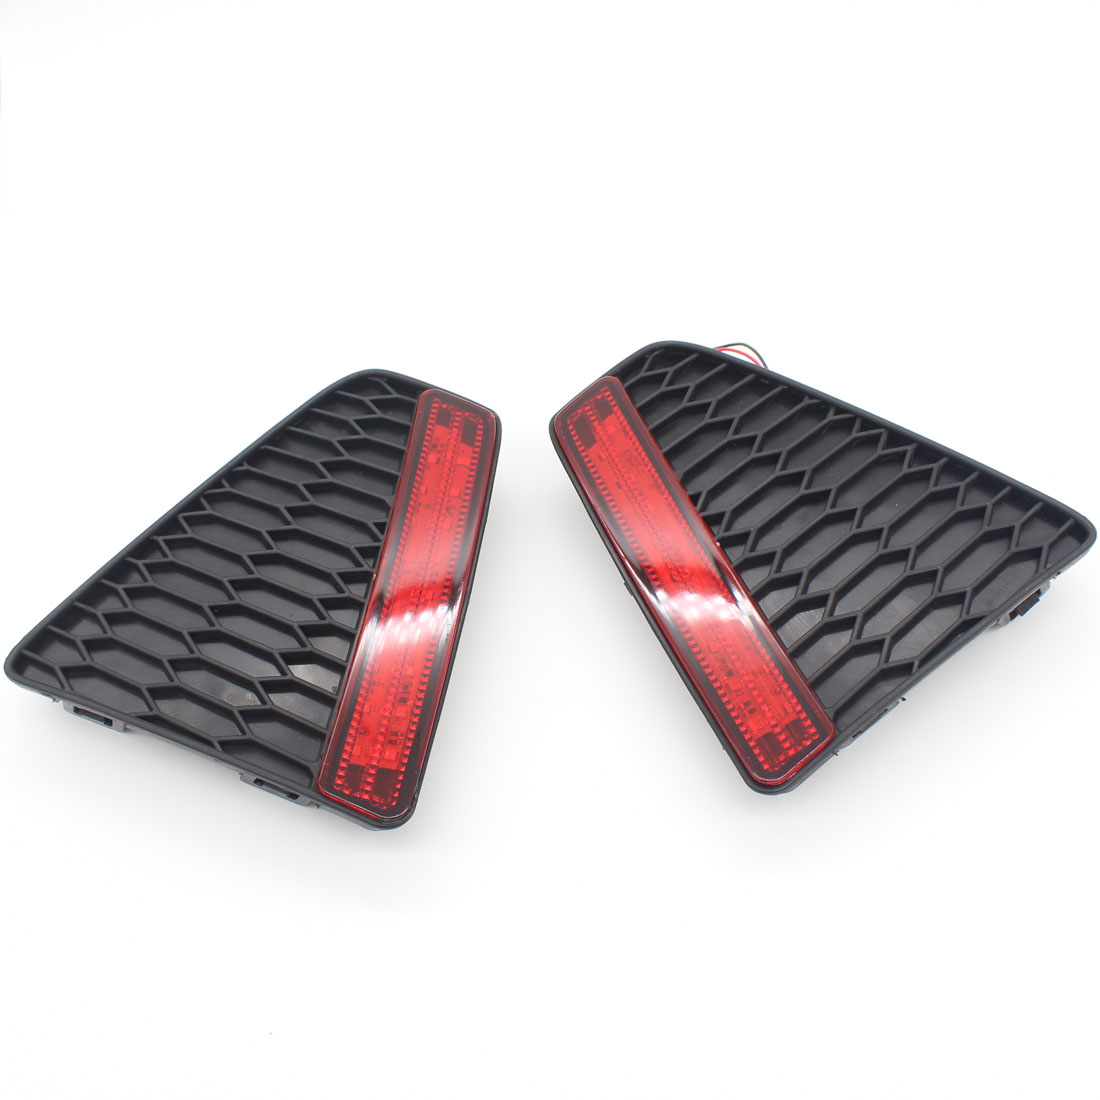 Dongzhen Backup Tail Rear Bumper Lamp LED Reflector stop Brake light fog lamp Fit For Honda Fit 2014-2015 car styling